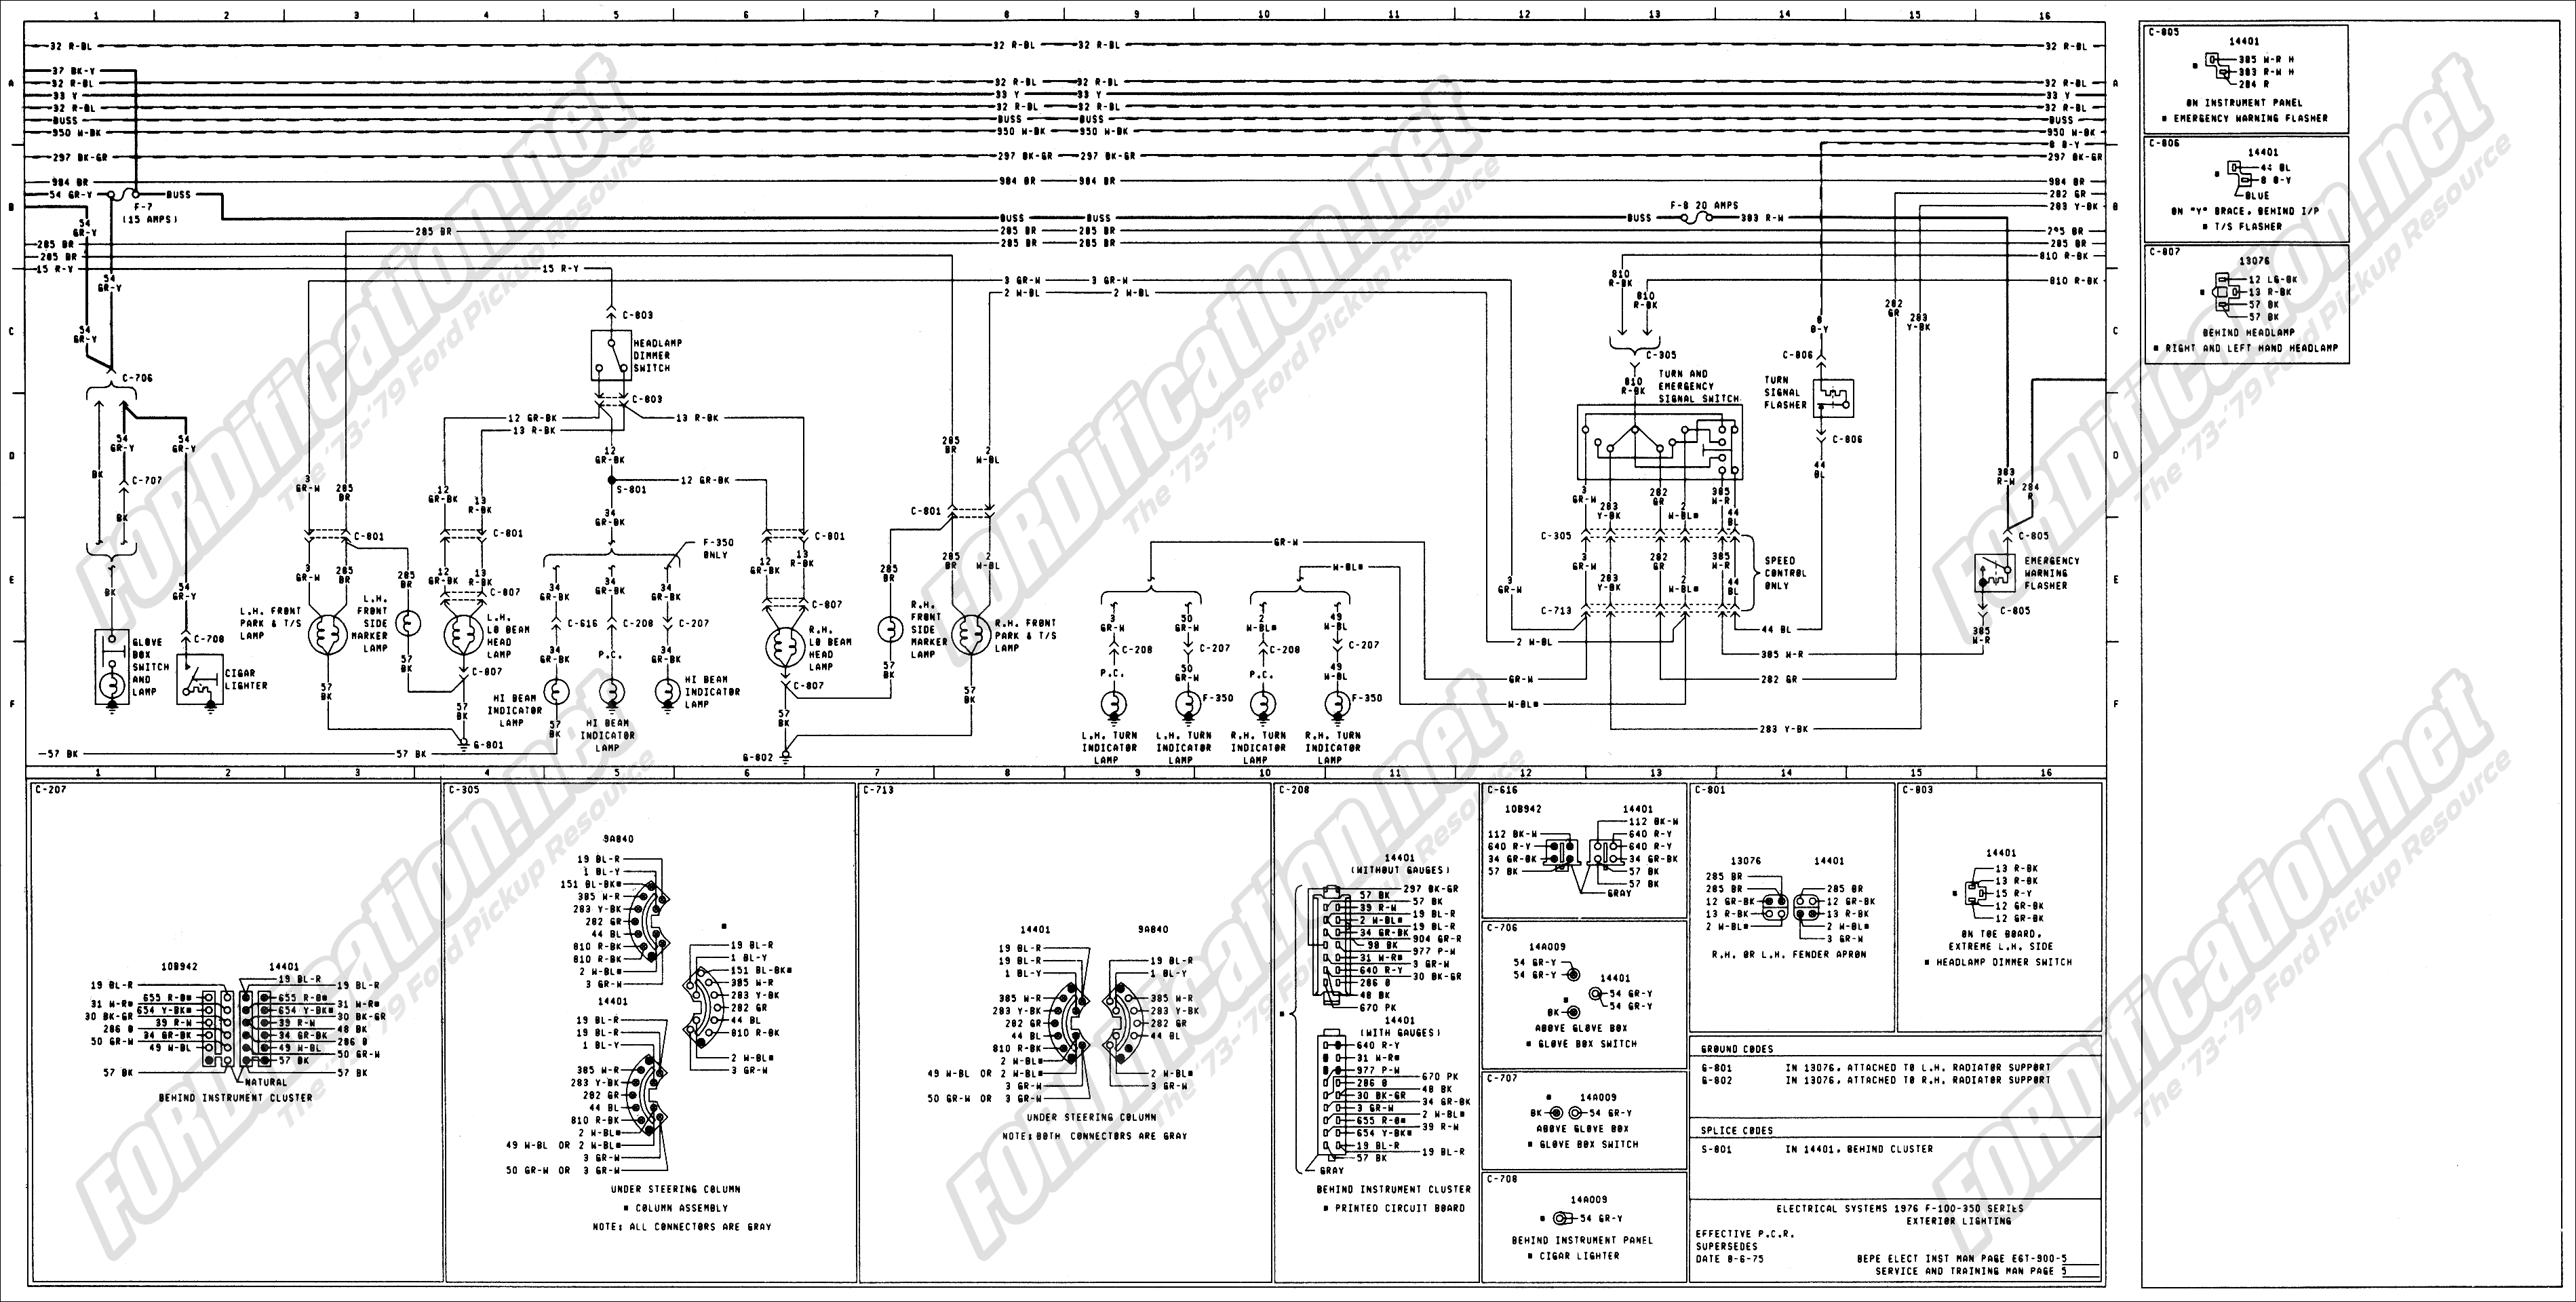 wiring_76master_5of9 1973 1979 ford truck wiring diagrams & schematics fordification net ford ignition wiring diagram at honlapkeszites.co